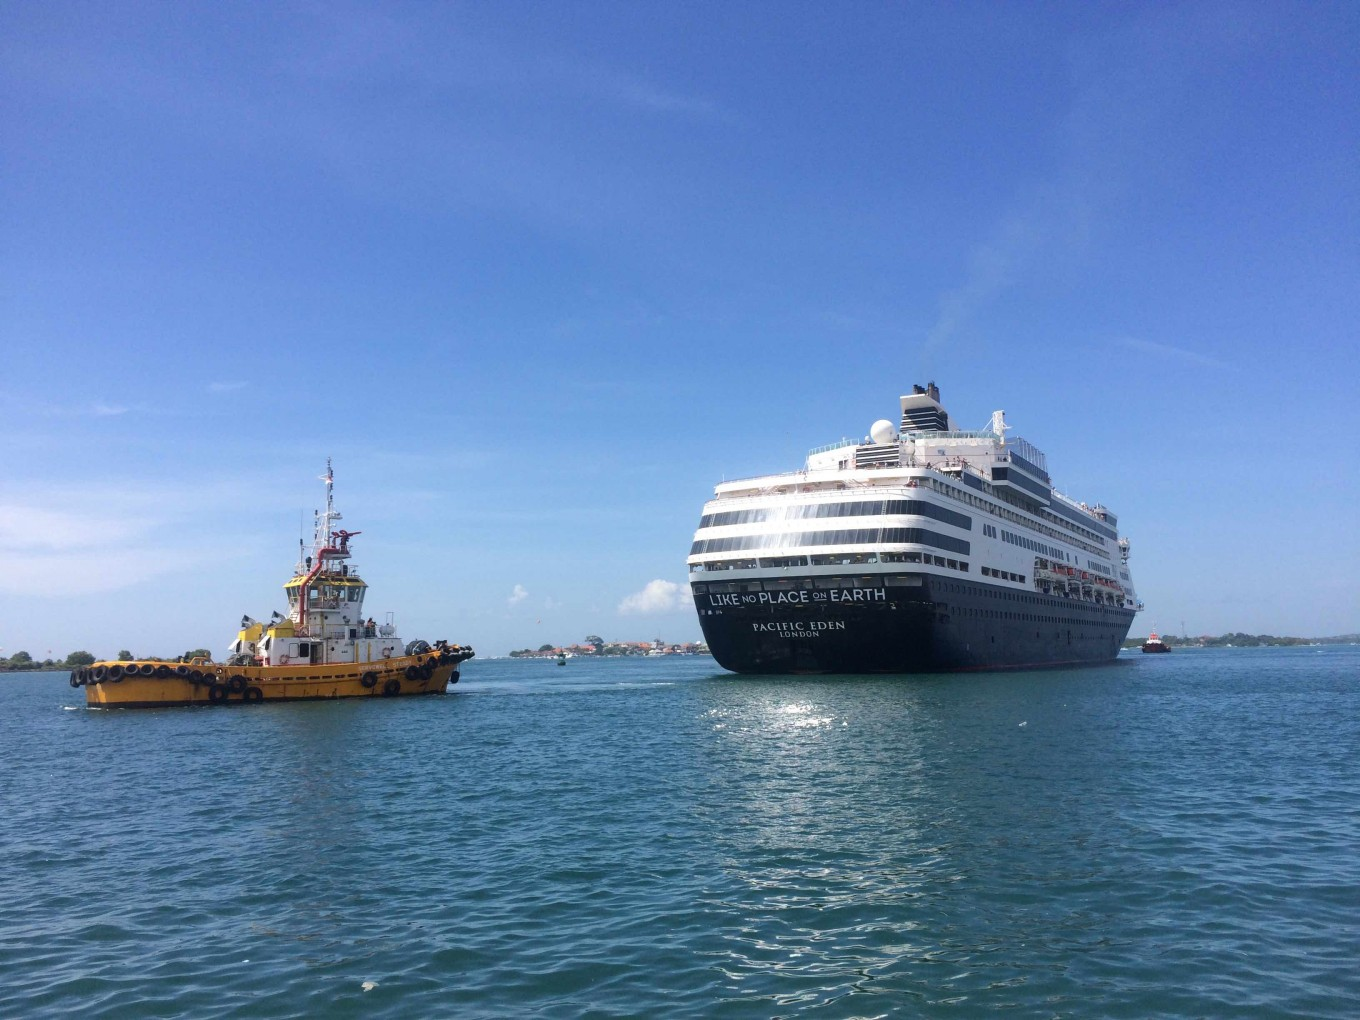 Tanjung Lesung eyes cruise ships and divers